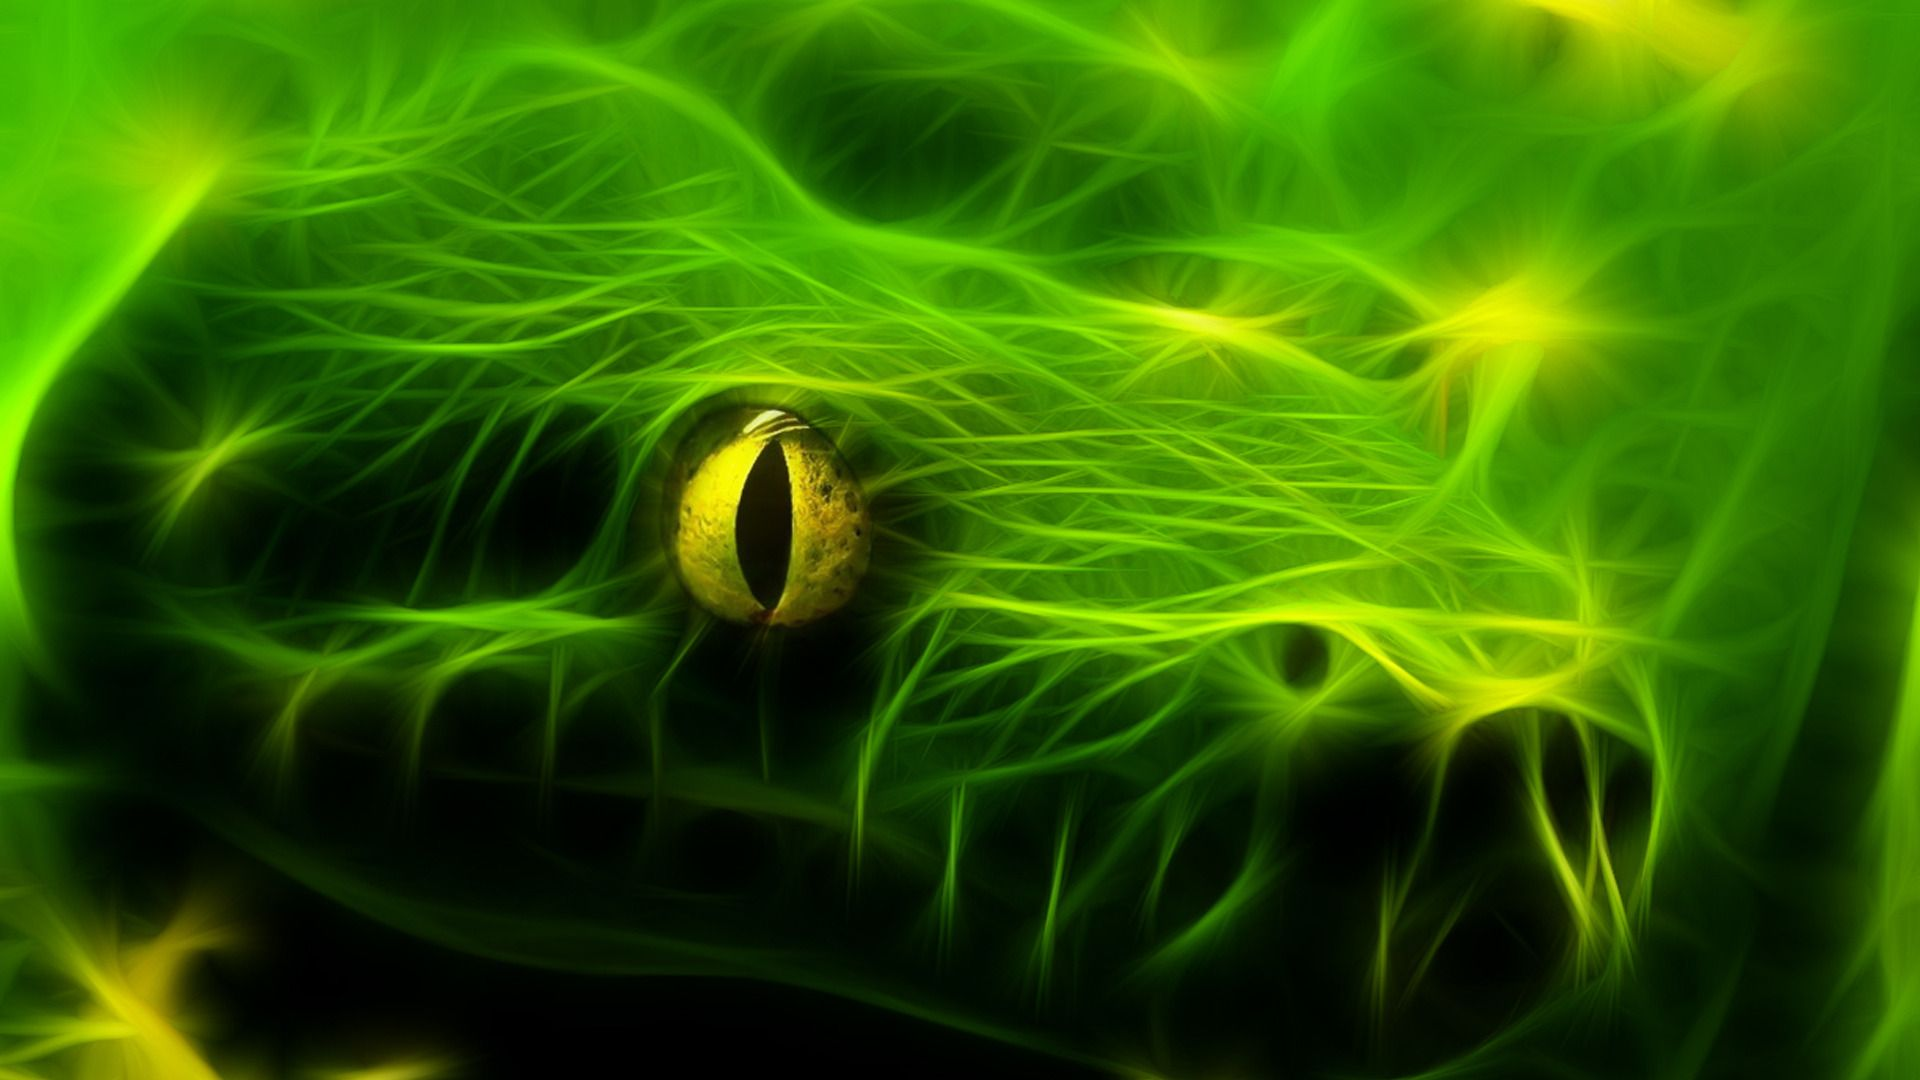 exotic snake wallpapers exotic snake images for free mtx | hd